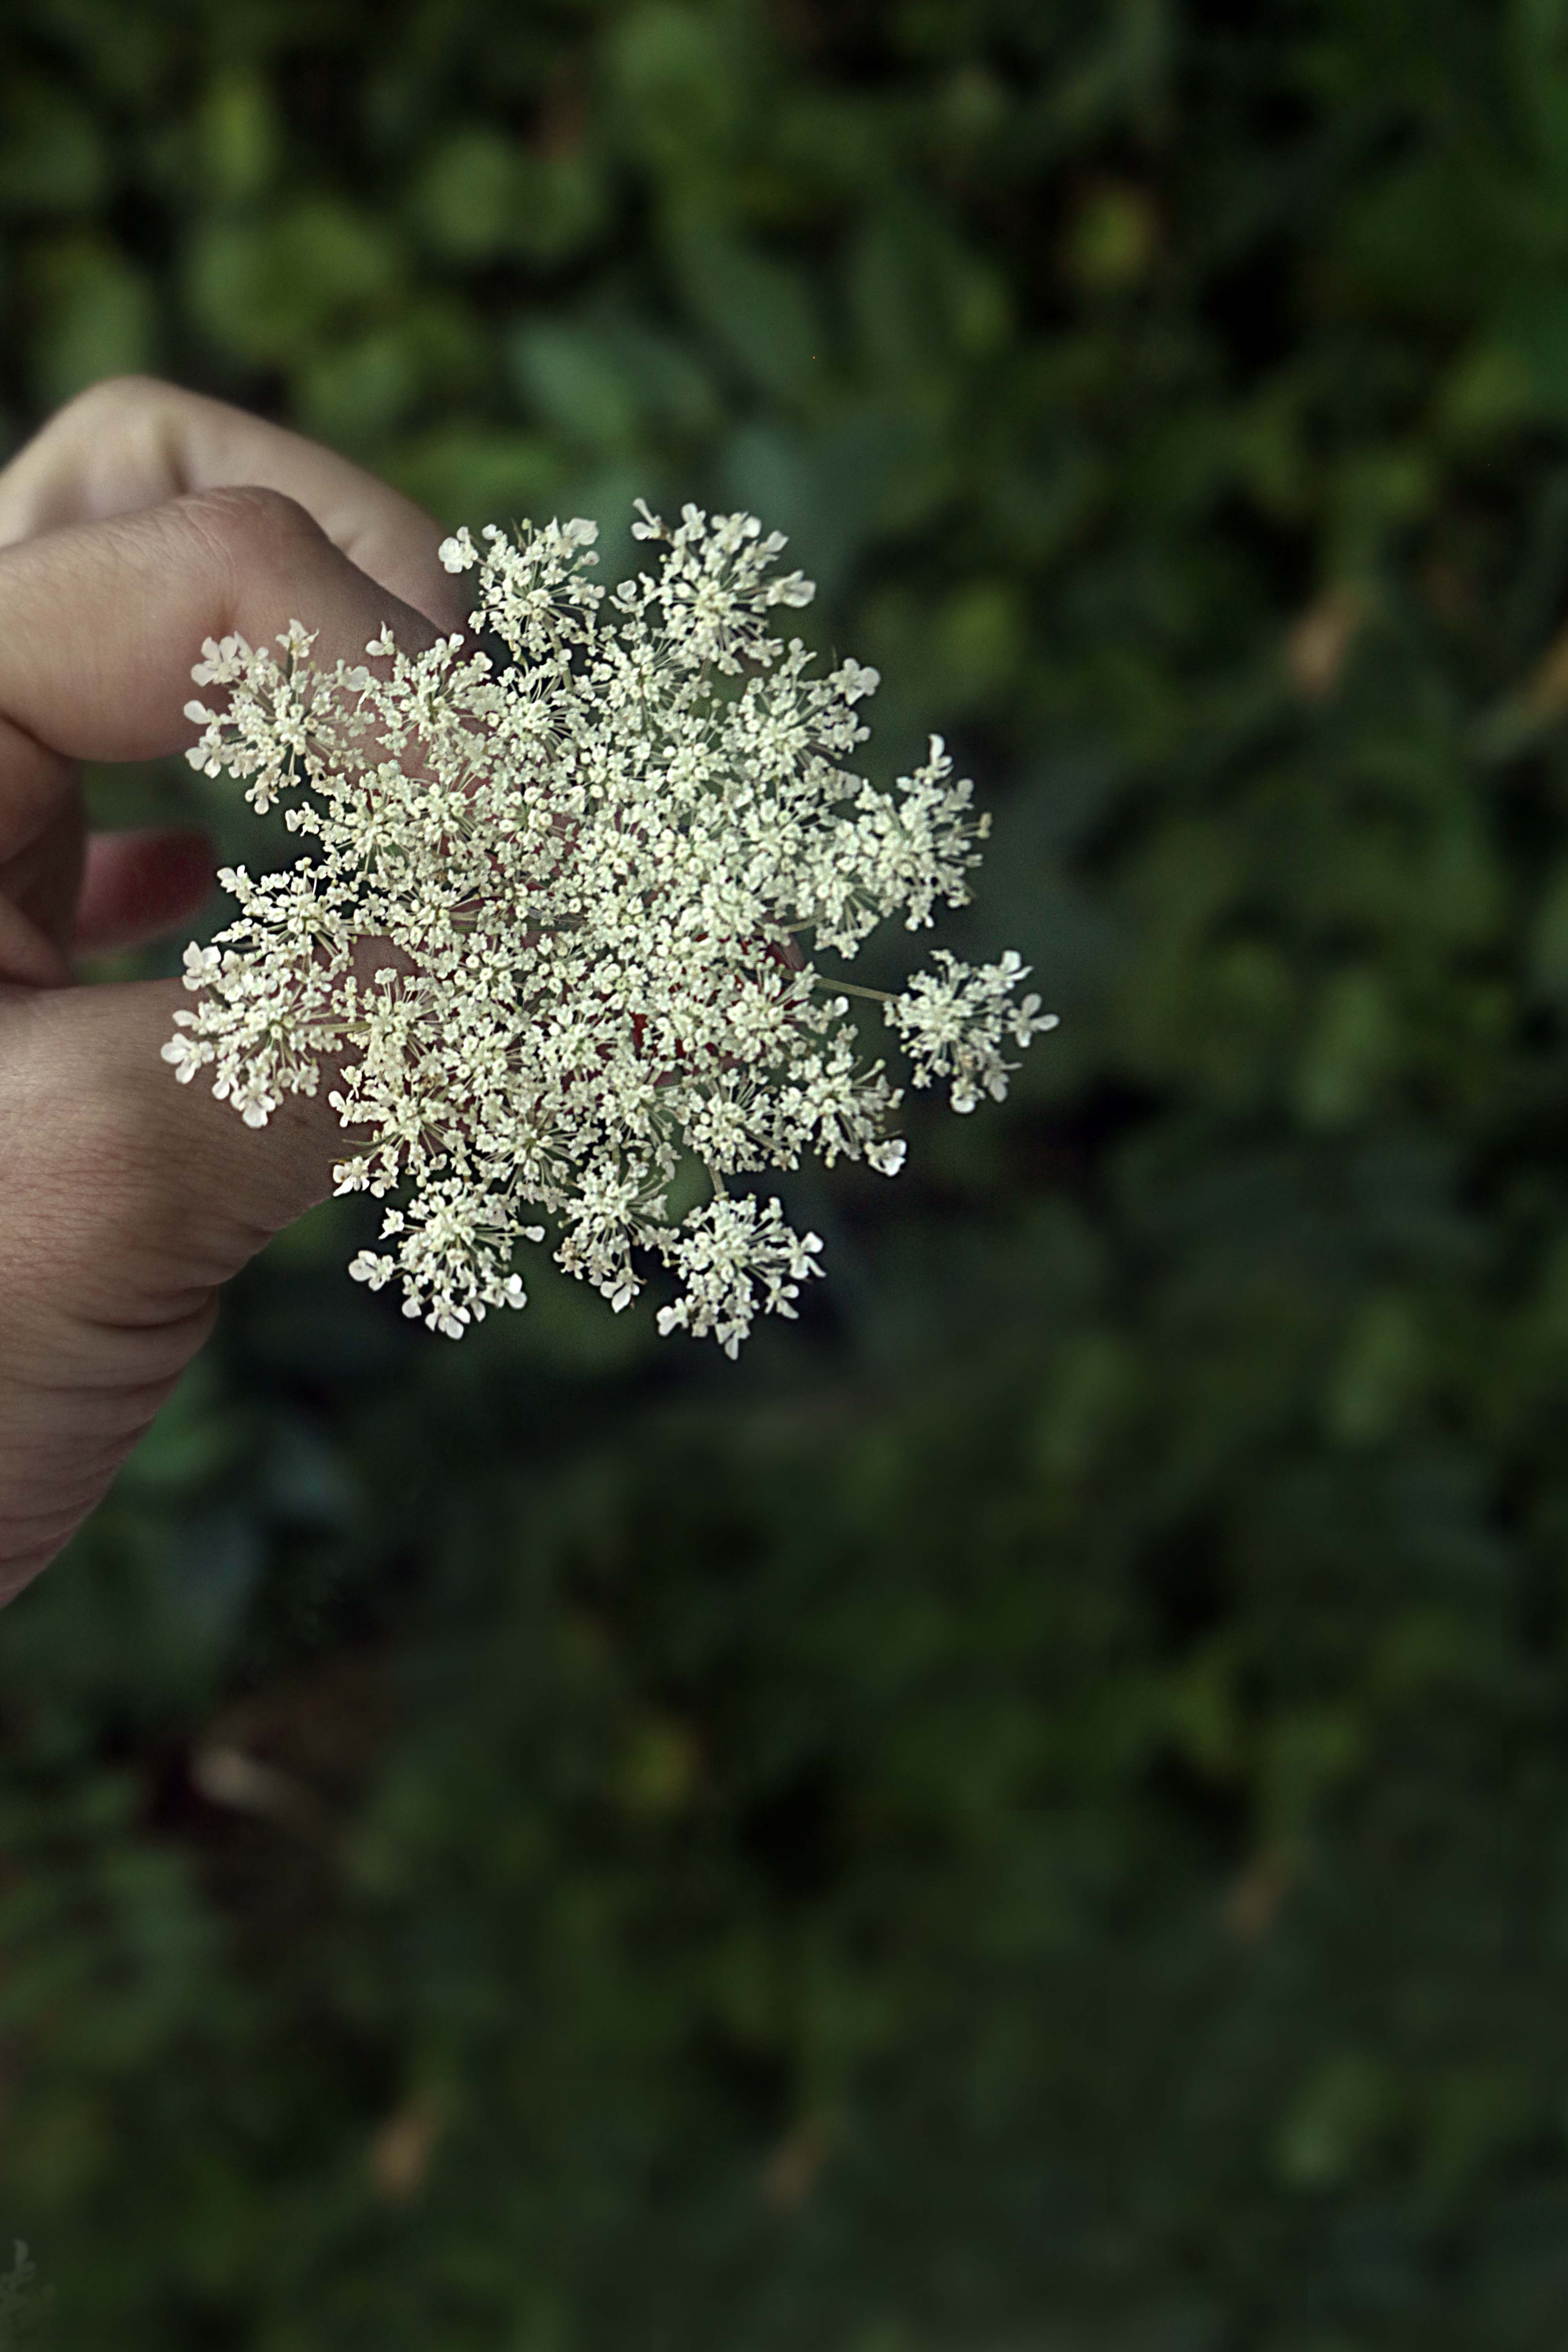 Queen Anne's lace and how to use it in witchcraft, magick and spells.